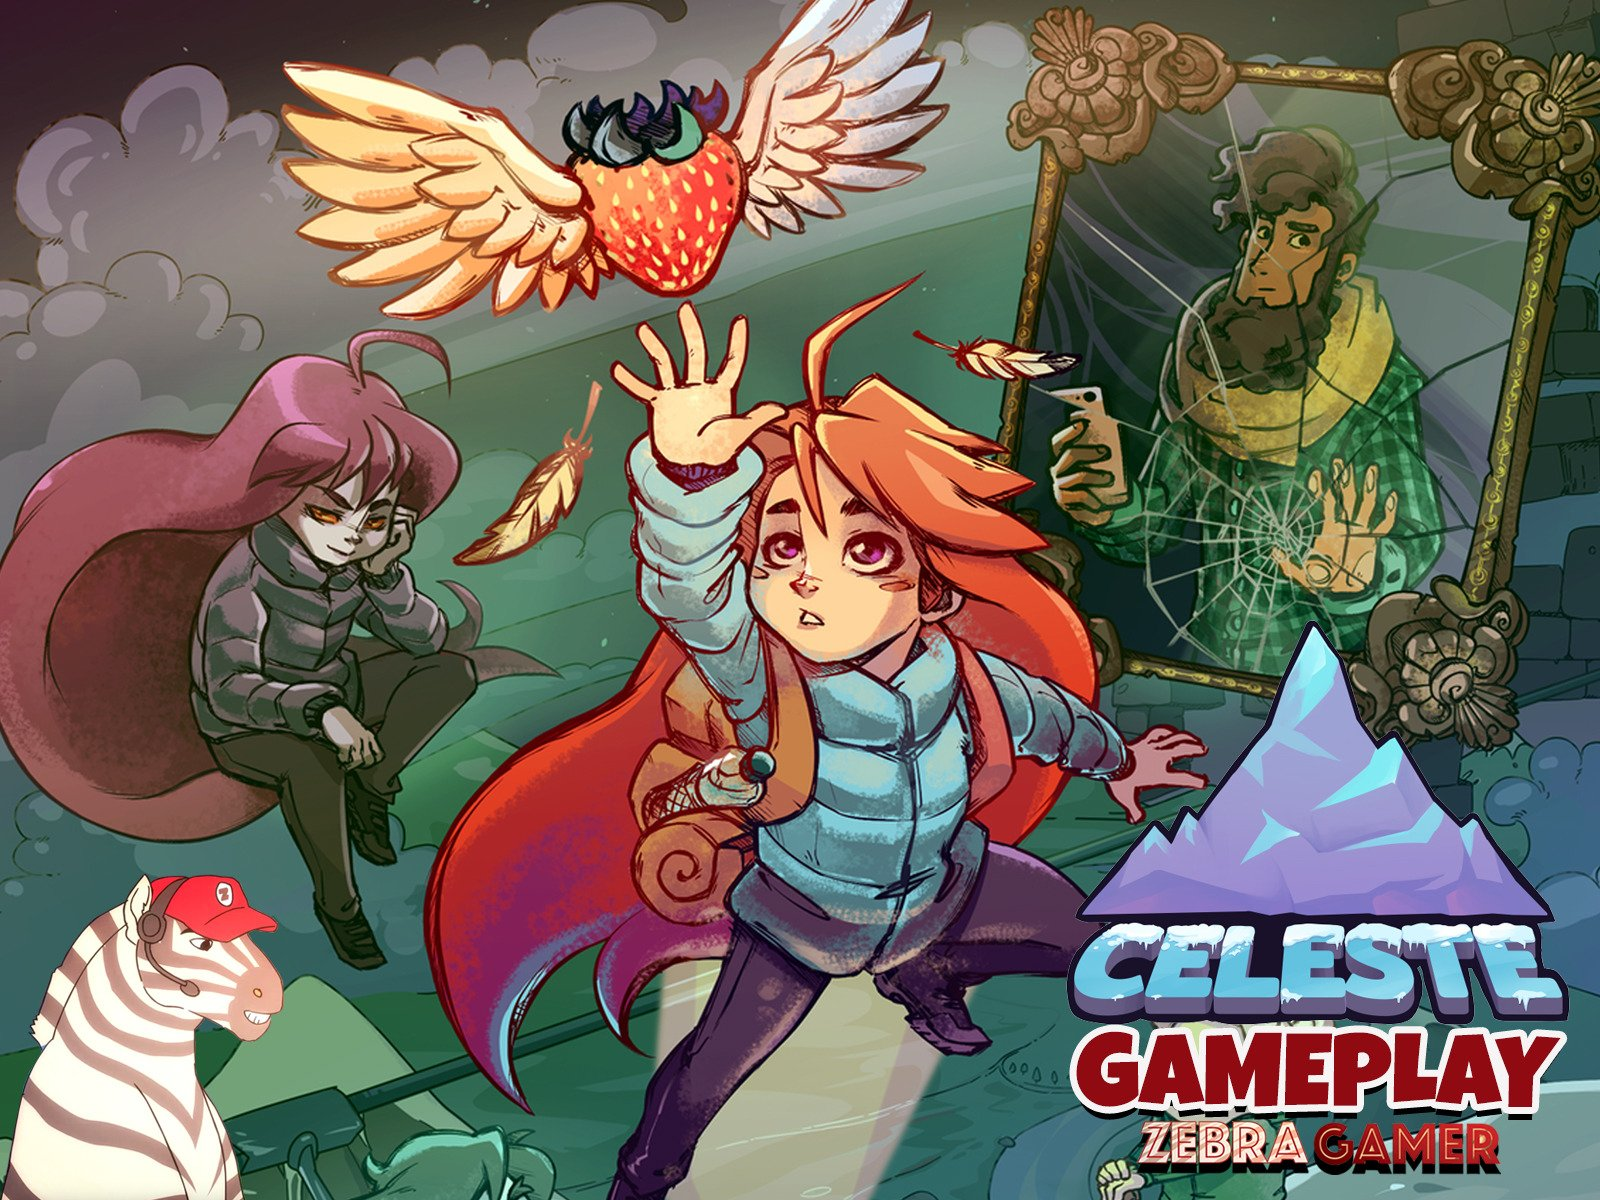 Celeste Gameplay - Season 1